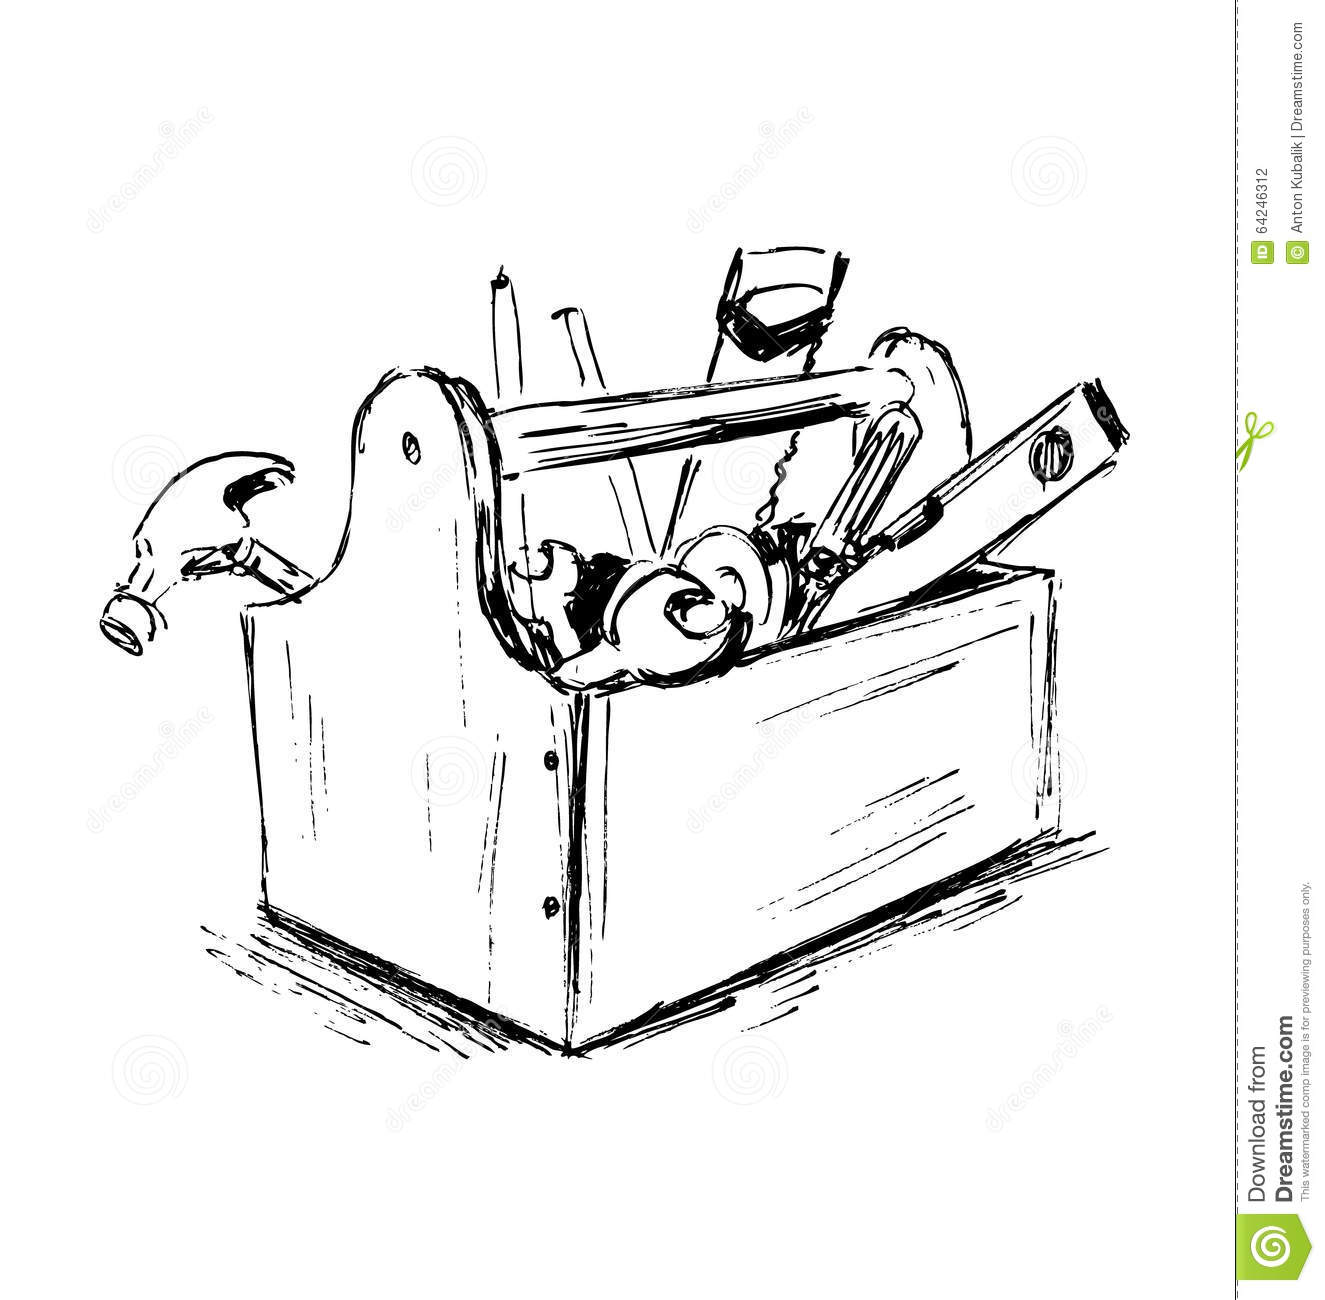 Hand Sketch The Box With Tools Stock Vector Image 64246312